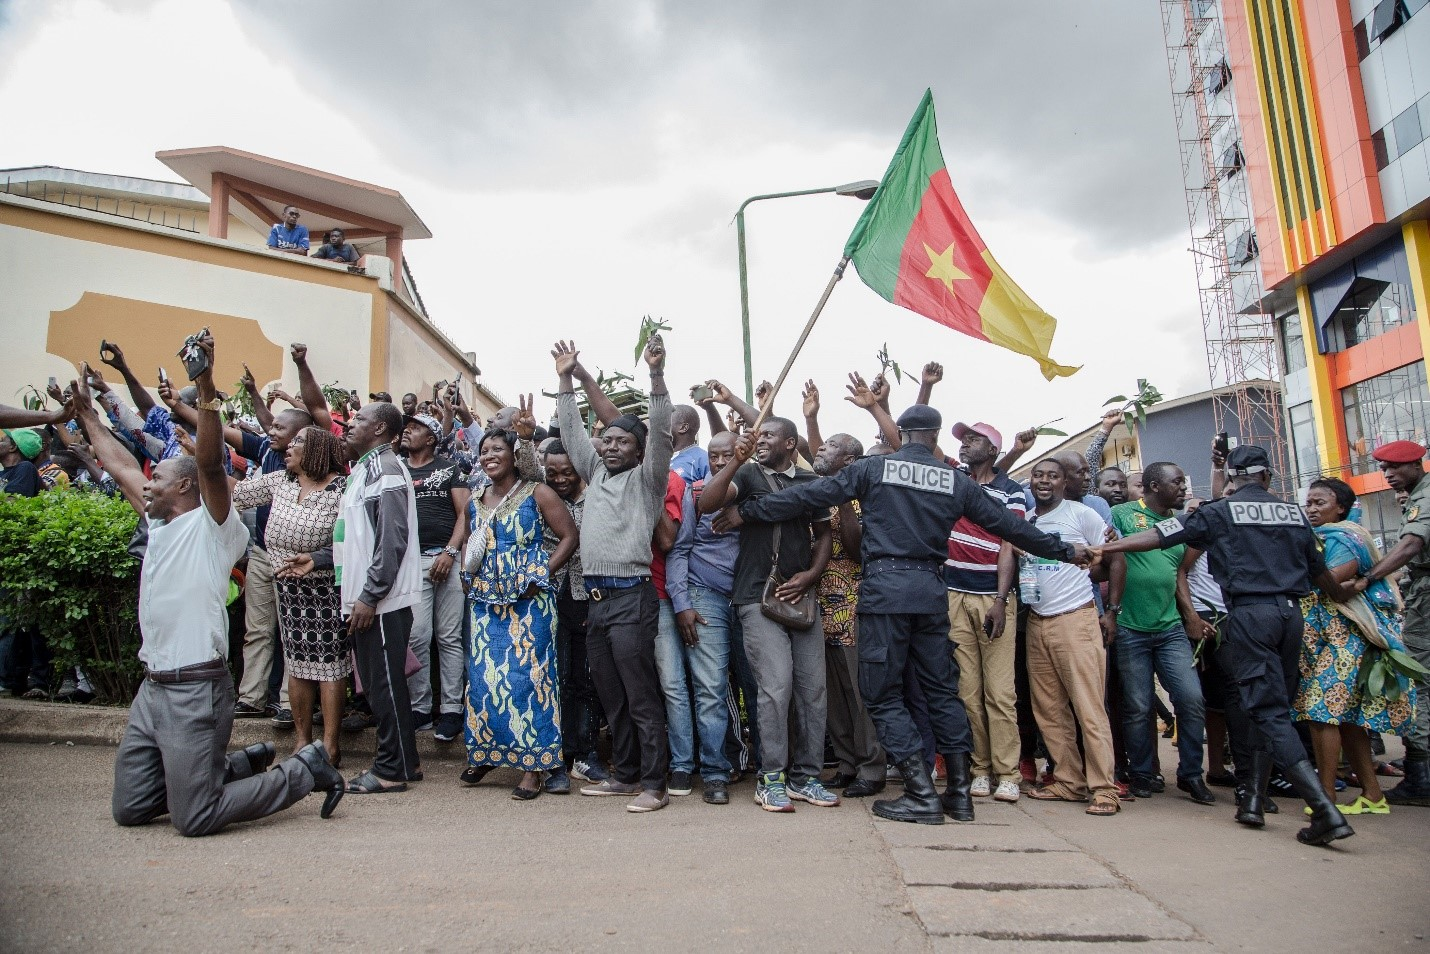 Hundreds of supporters raise their arms and wave the national flag while waiting to greet the Cameroonian opposition leader Maurice Kamto in Yaoundé on Oct. 5, the day of his release from prison. STRINGER/AFP via Getty Images